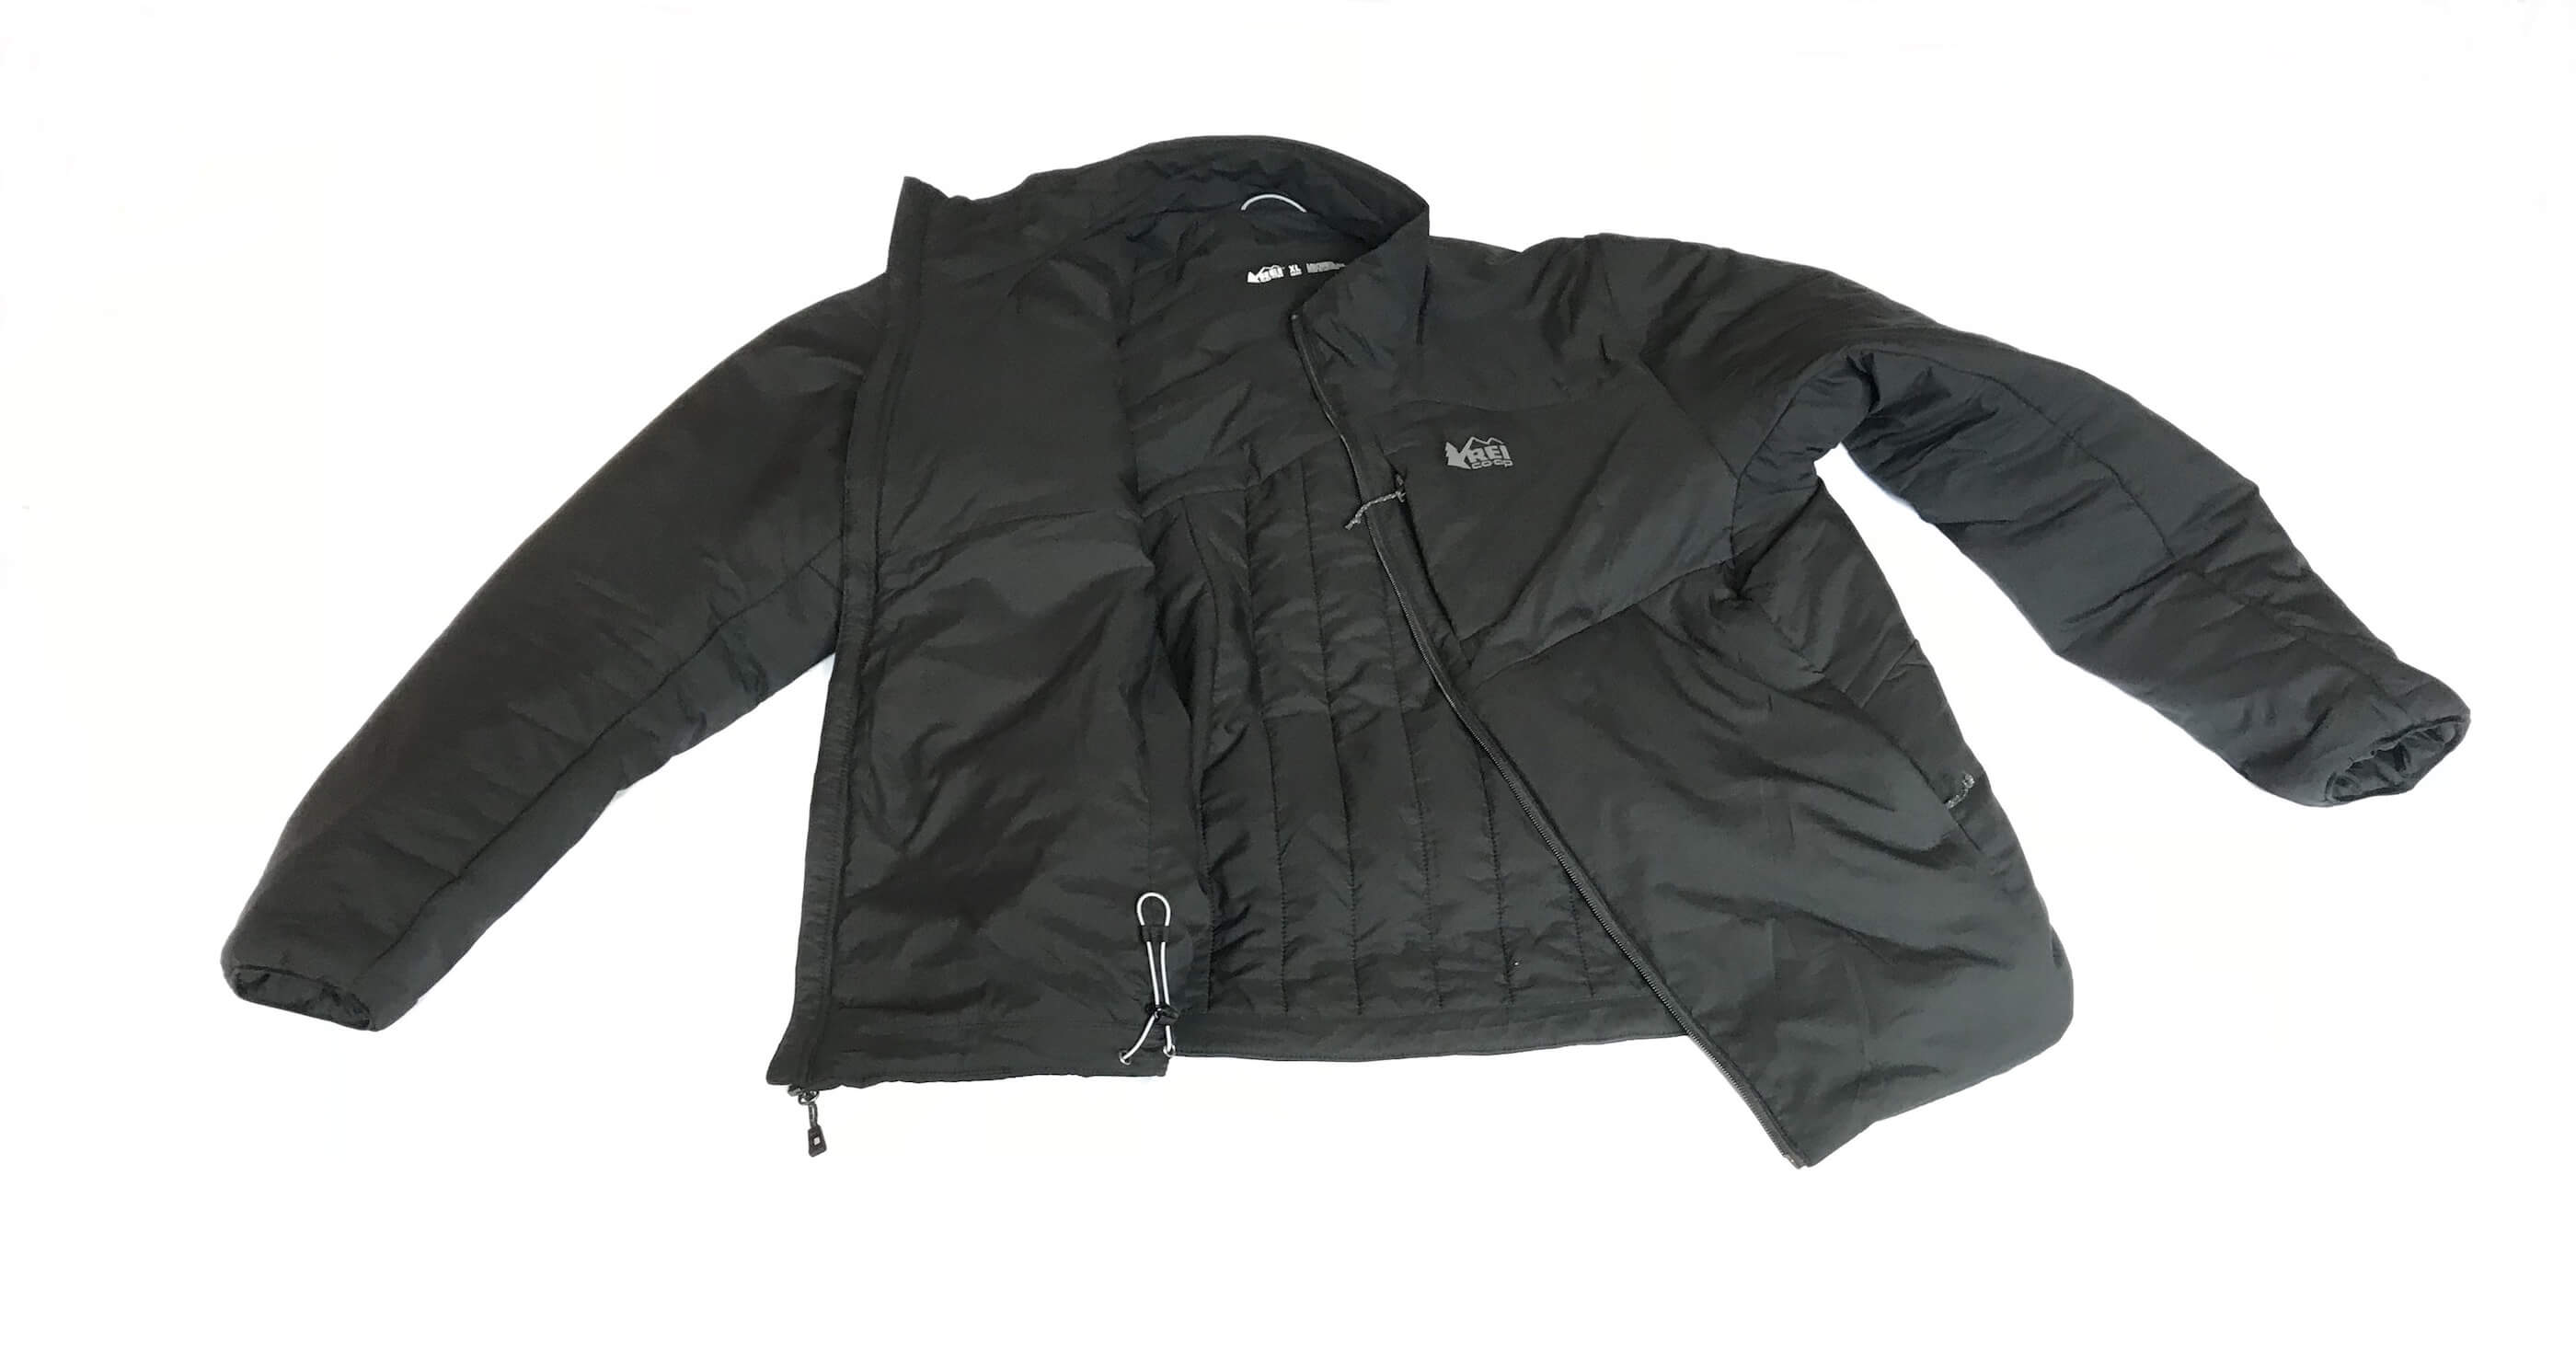 REI Co-op Activator SI Jacket Review - Man Makes Fire